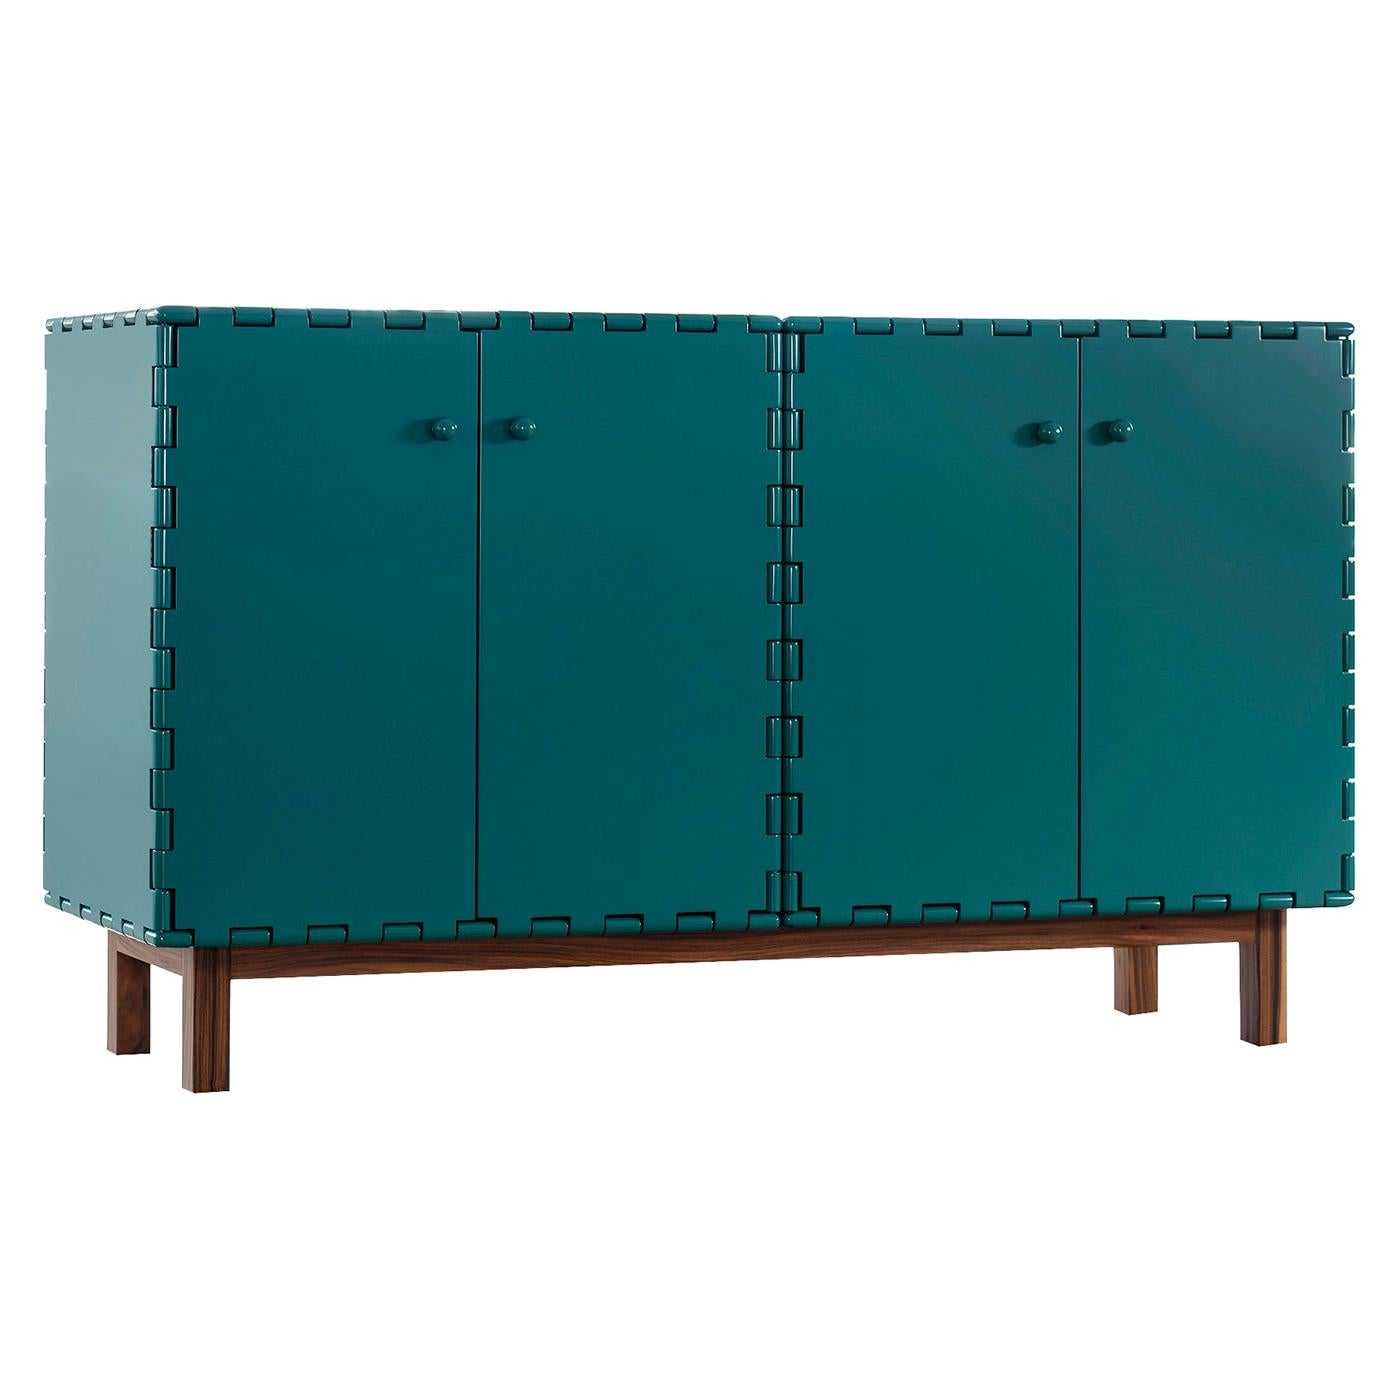 Finest Handcrafted Lacquered Interlocking Wood Panels Sideboard, Cabinet B